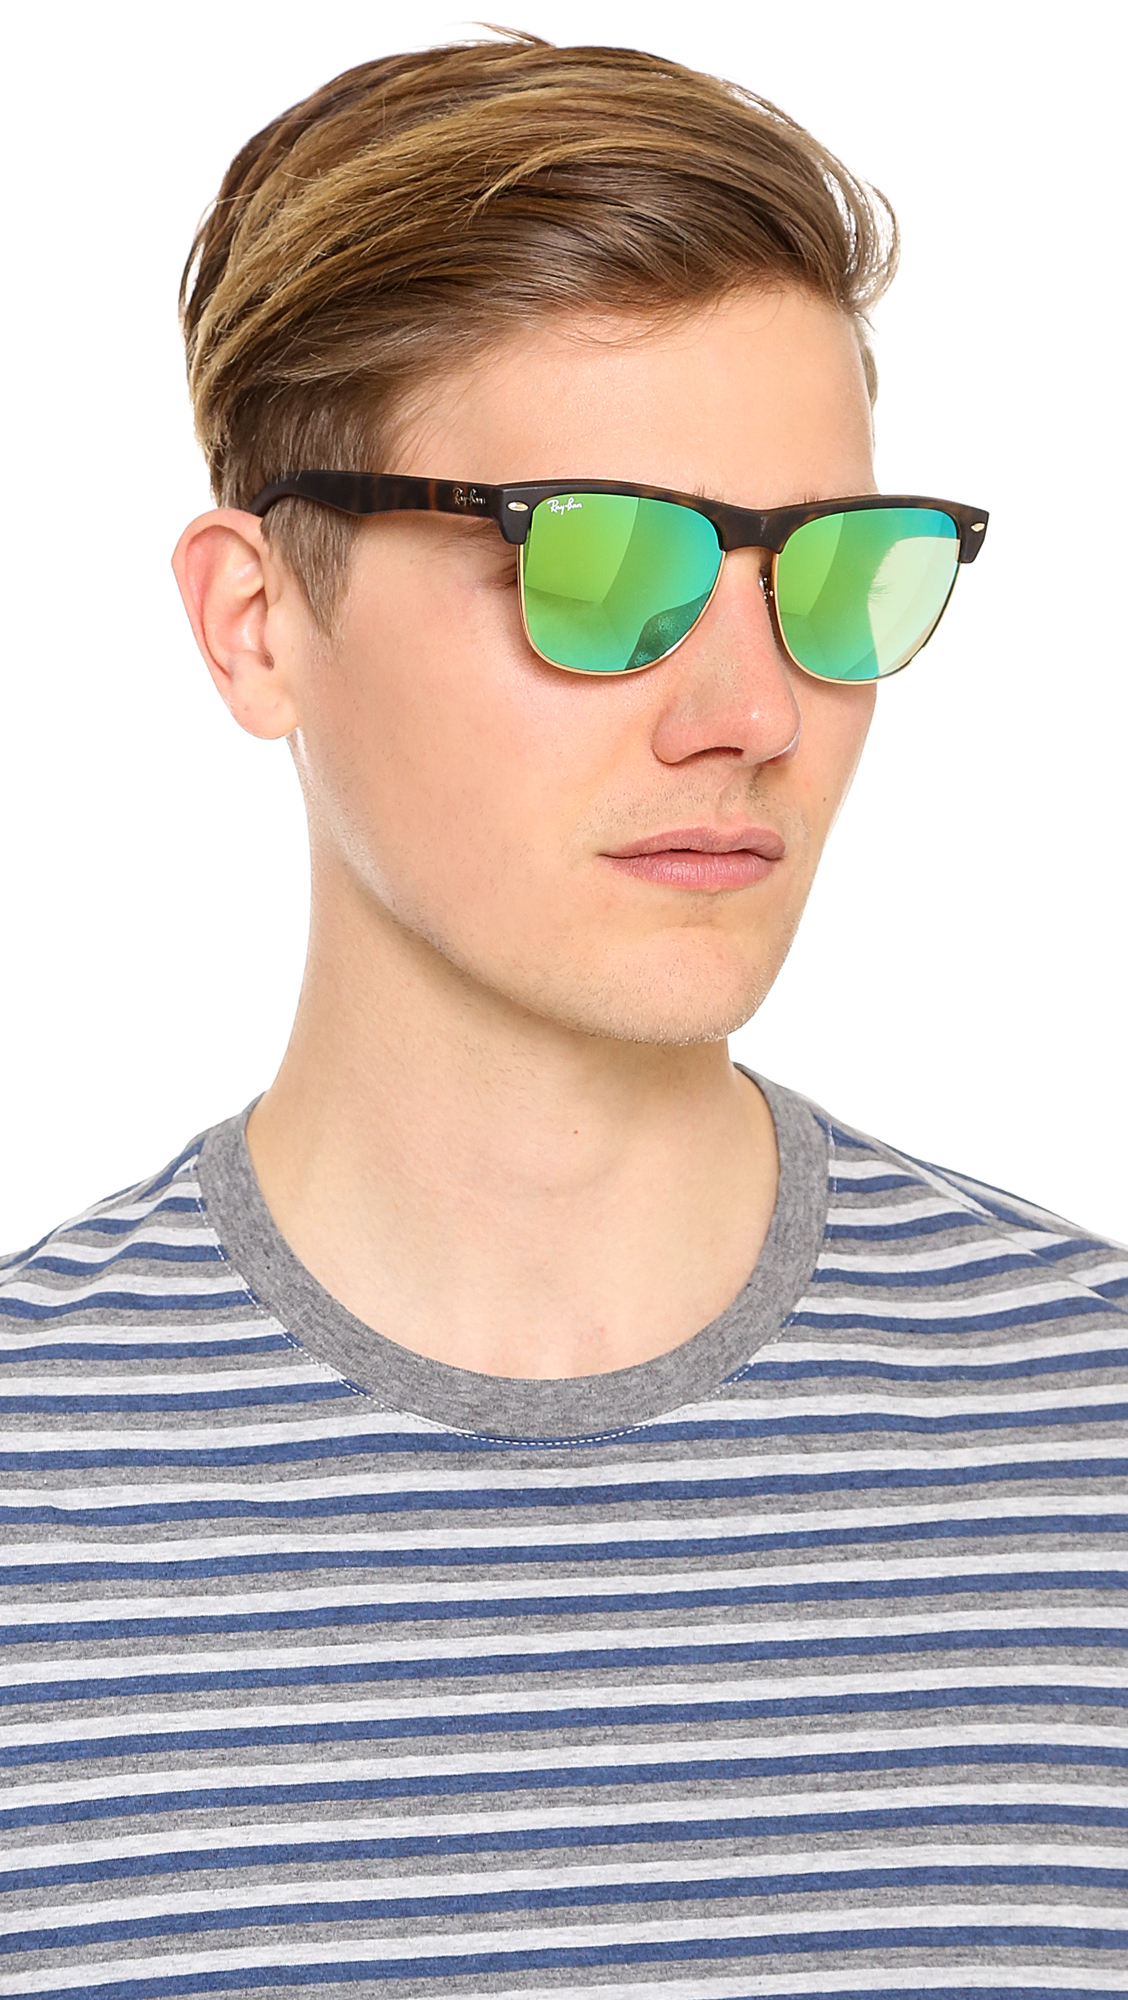 ray ban mirrored clubmaster sunglasses  gallery. previously sold at: east dane · men's mirrored sunglasses men's ray ban clubmaster